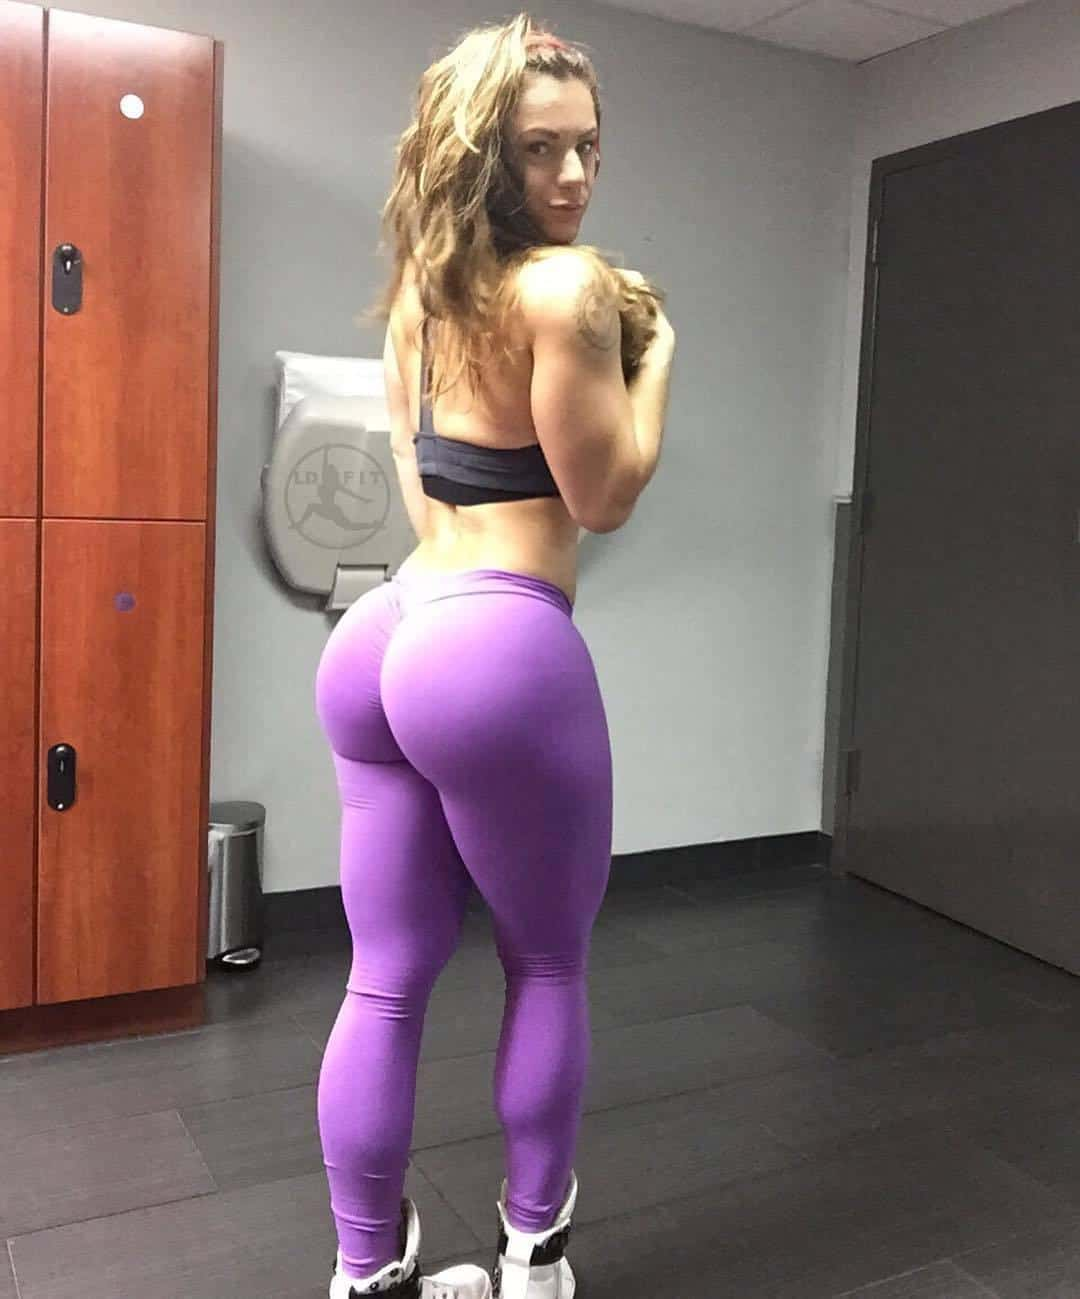 Big butts in tights